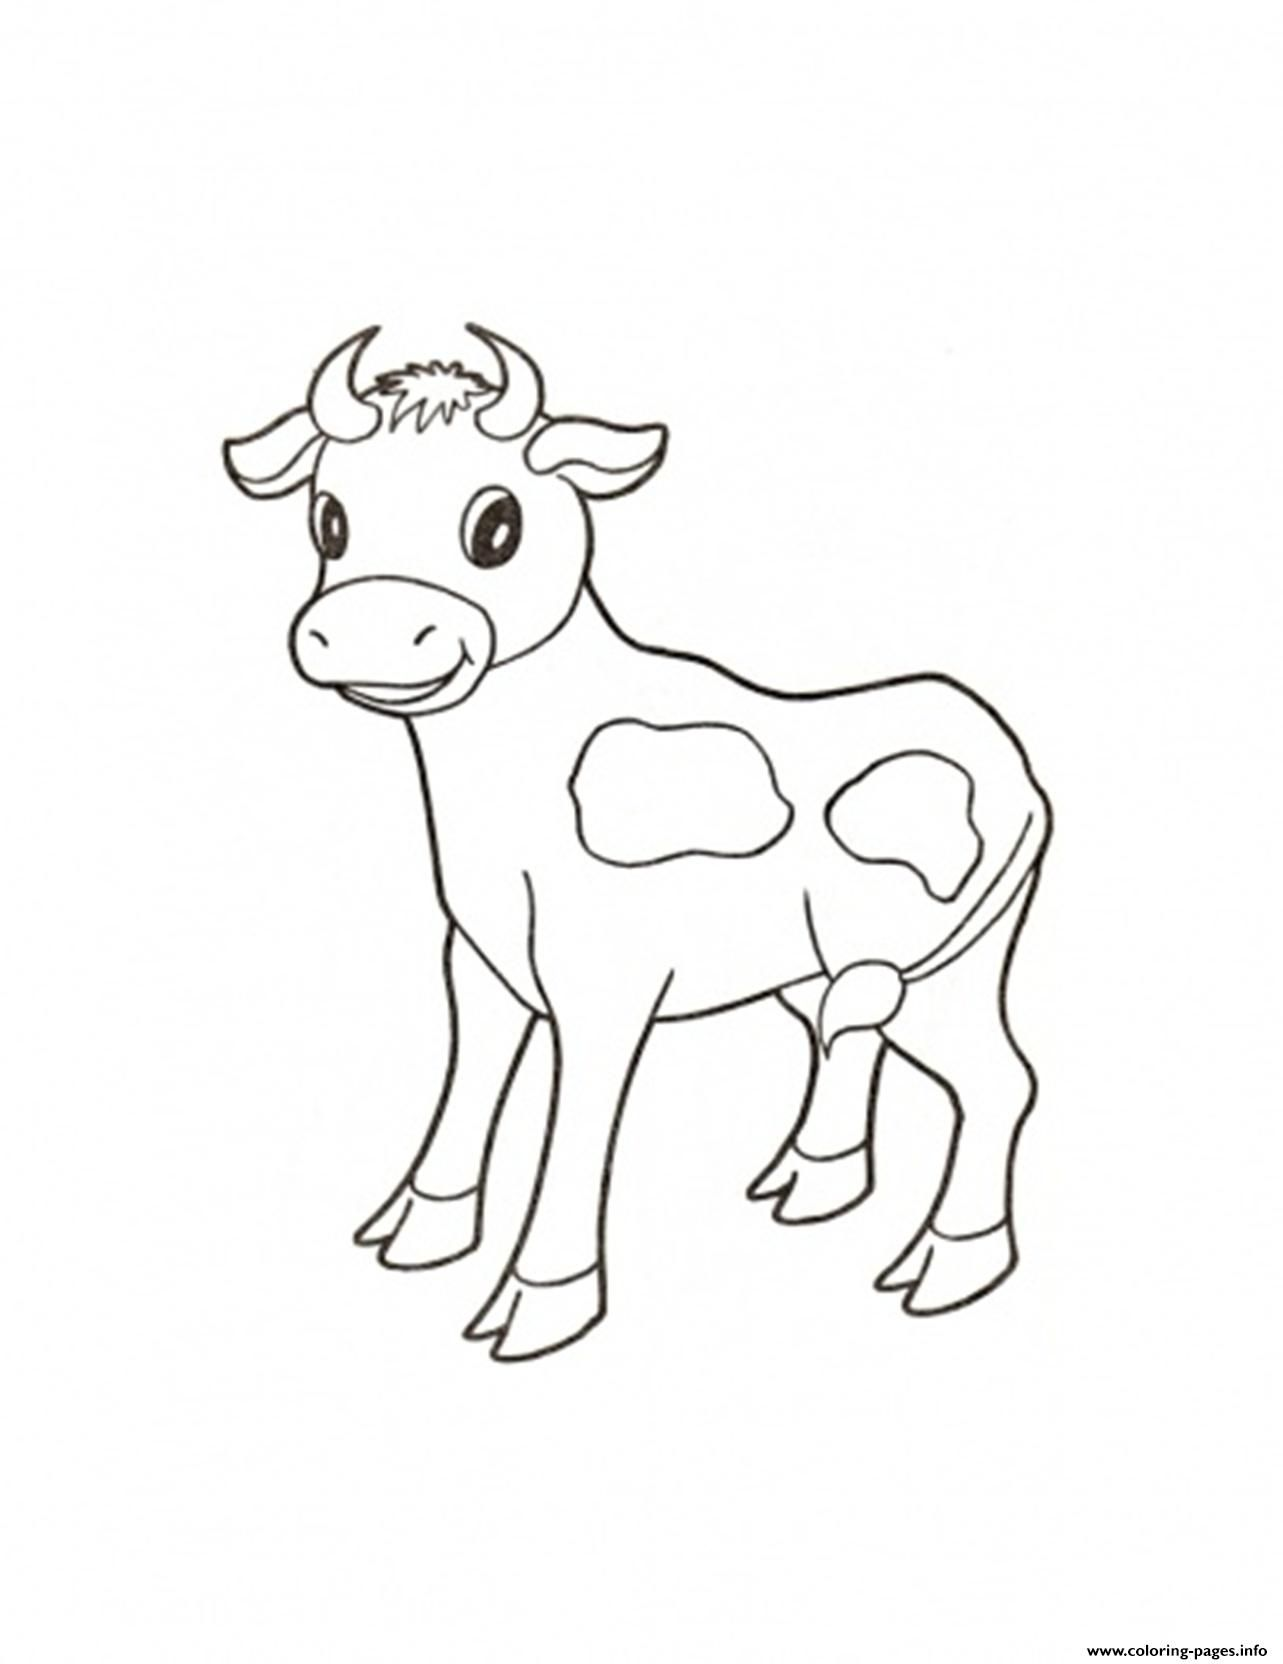 Print Cute Calf Farm Animal S32ee Coloring Pages Farm Animal Coloring Pages Cow Coloring Pages Animal Coloring Pages